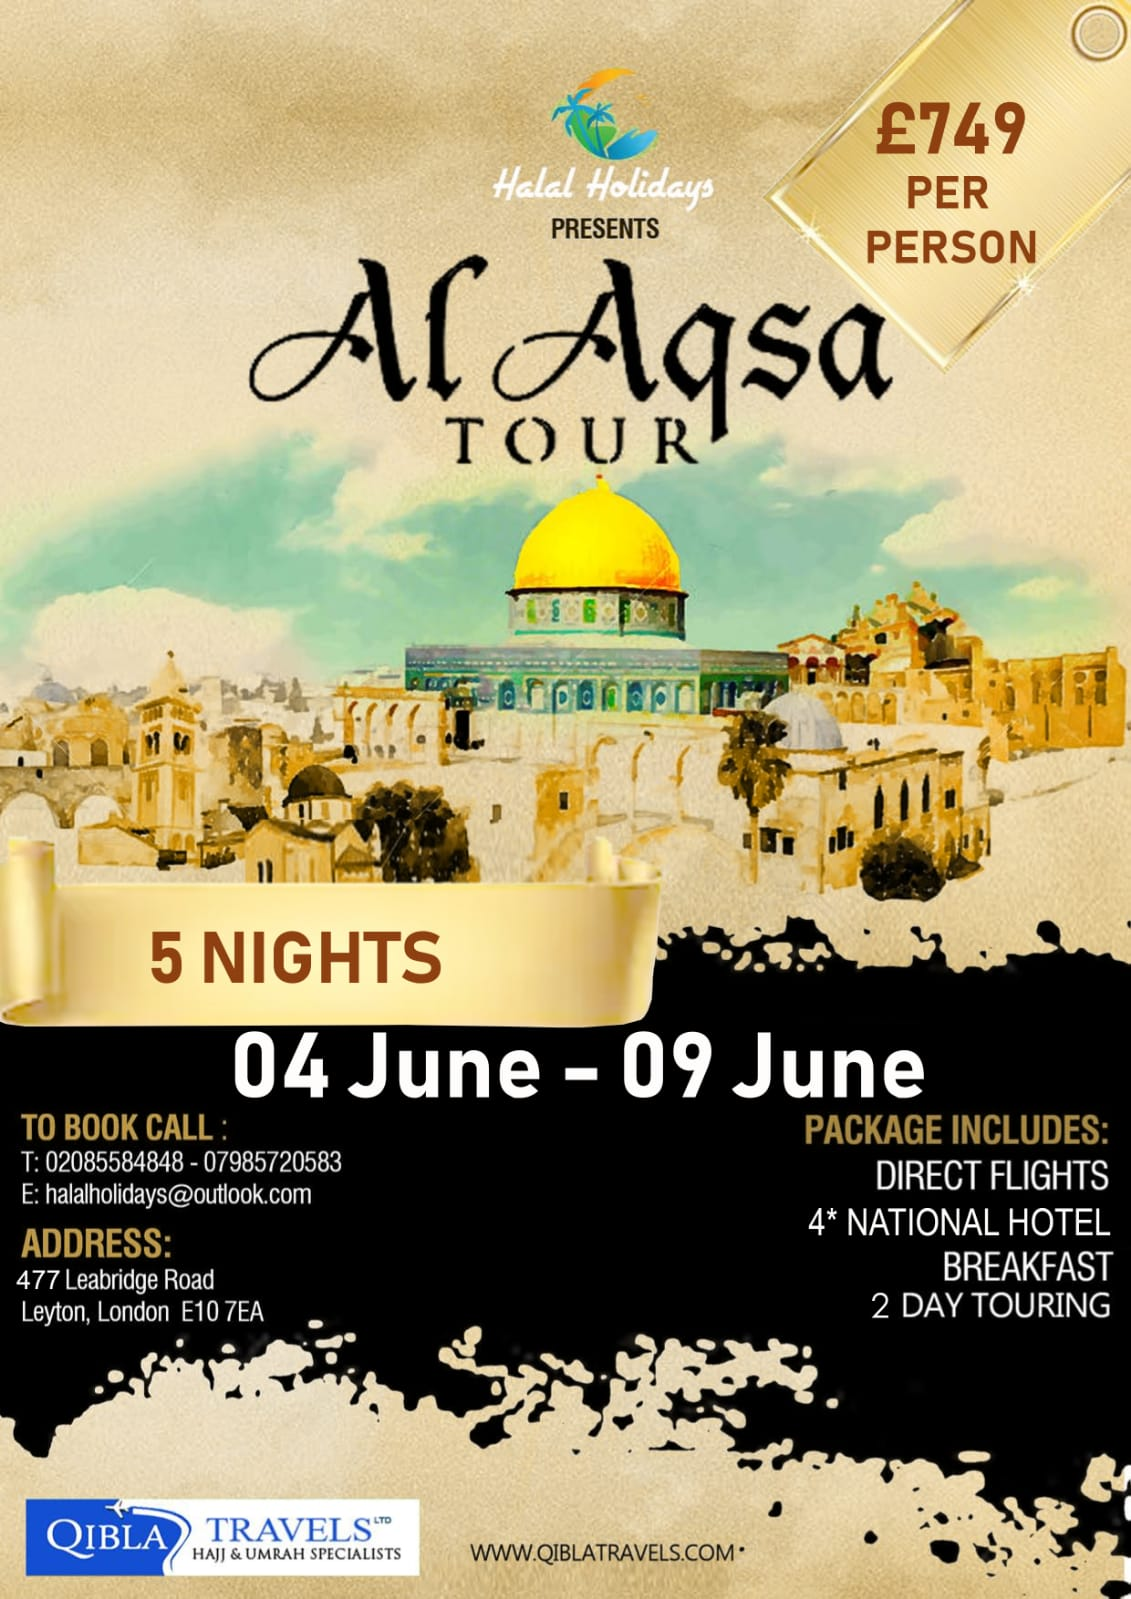 Aqsa Tour from UK